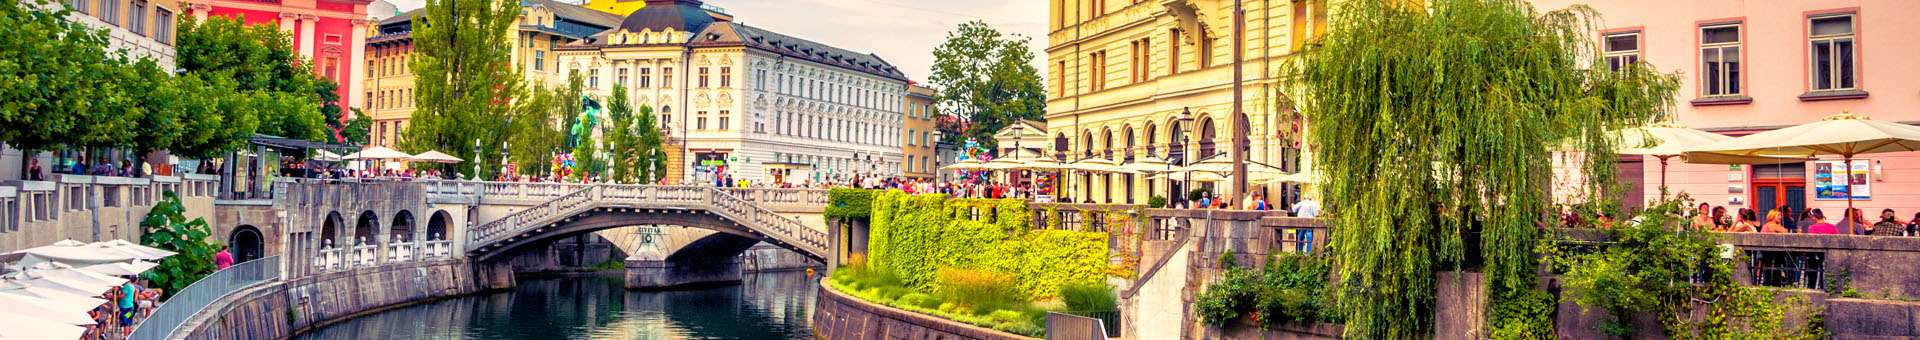 Search Whois information of domain names in Slovenia